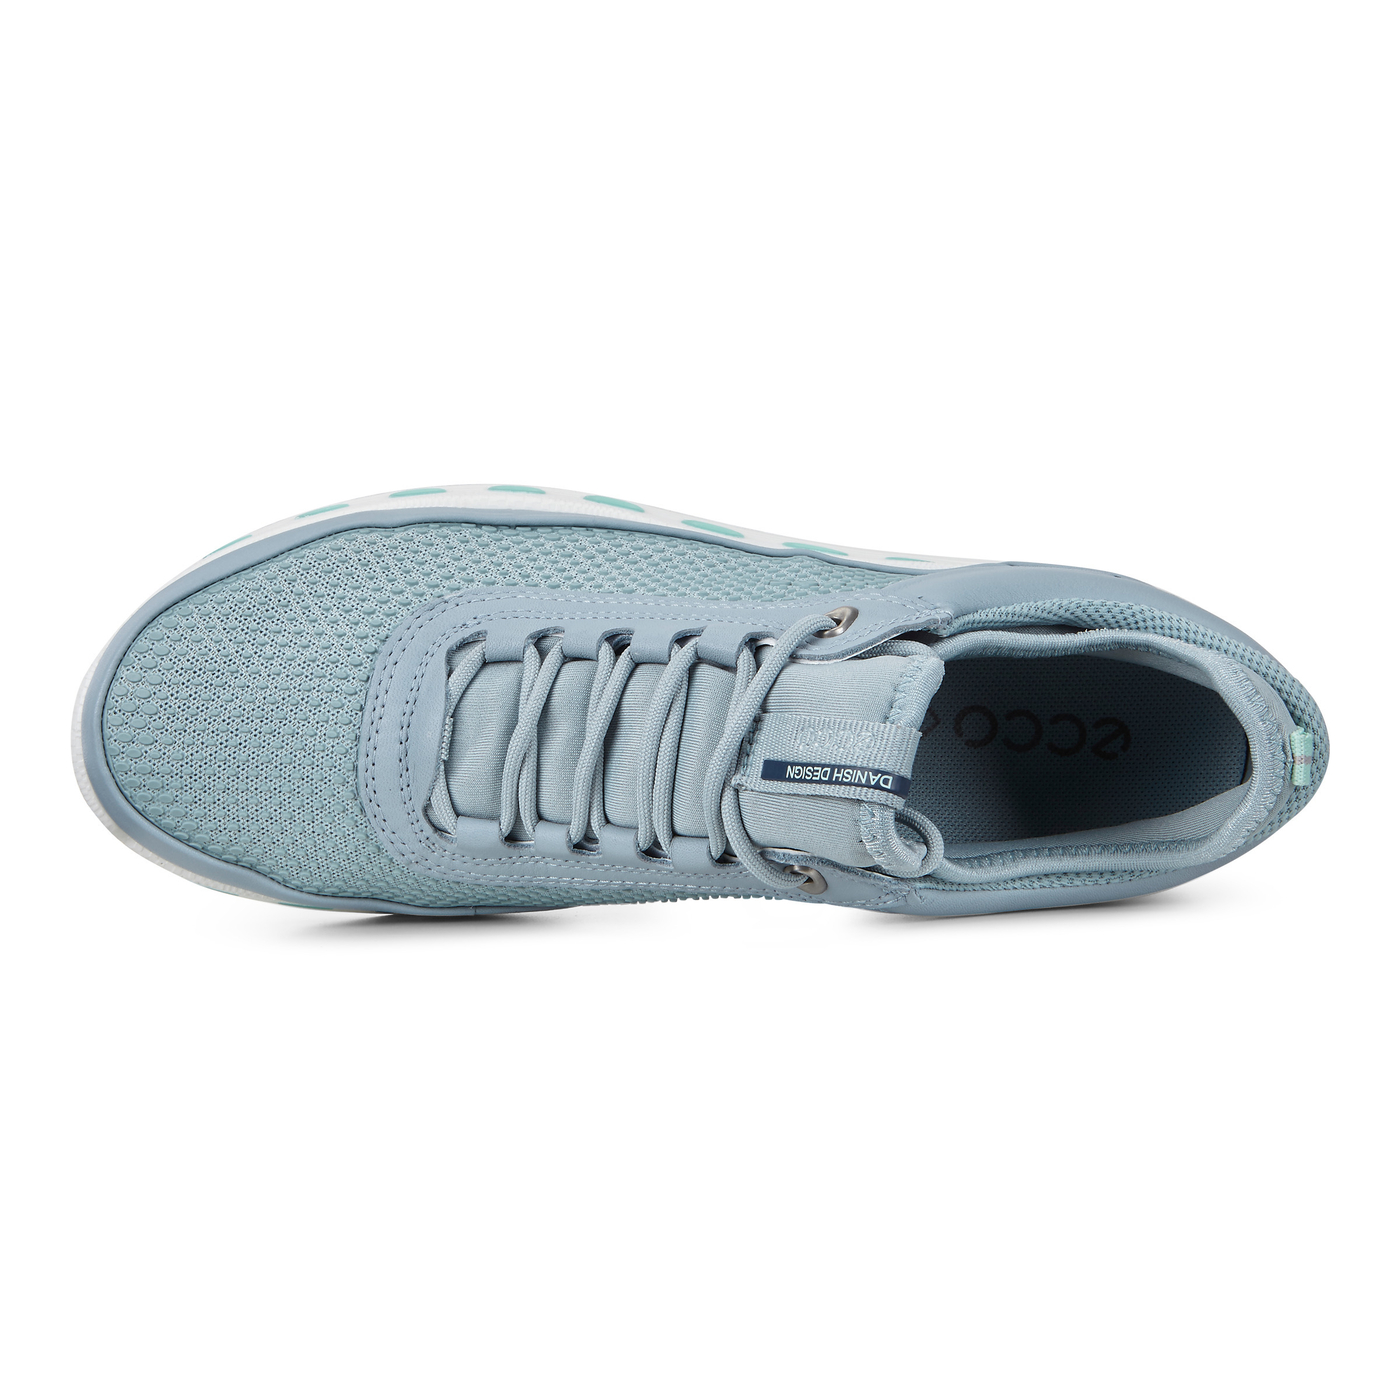 e46d9d08e274f ECCO Women's Cool 2.0 Sport Gore-Tex | Shoes | ECCO® Shoes